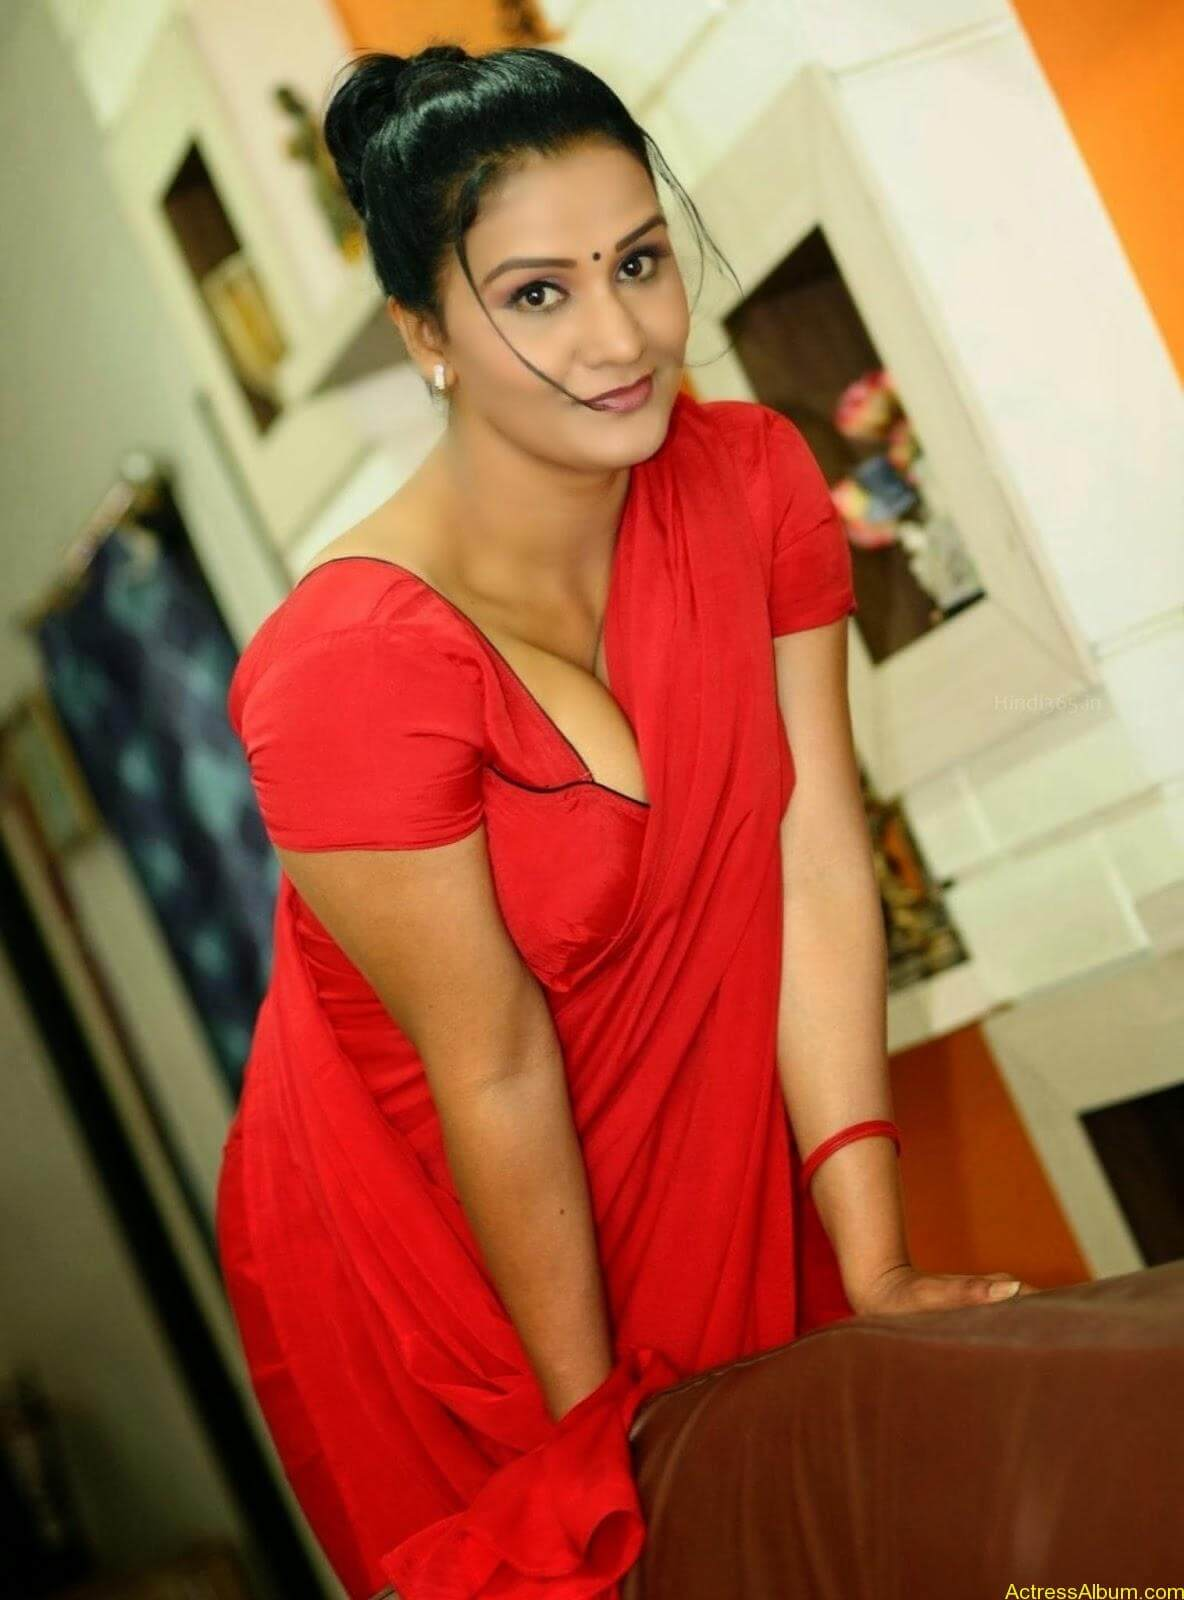 ACTRESS APOORVA VERY HOT IN RED SAREE PHOTO COLLECTION 15